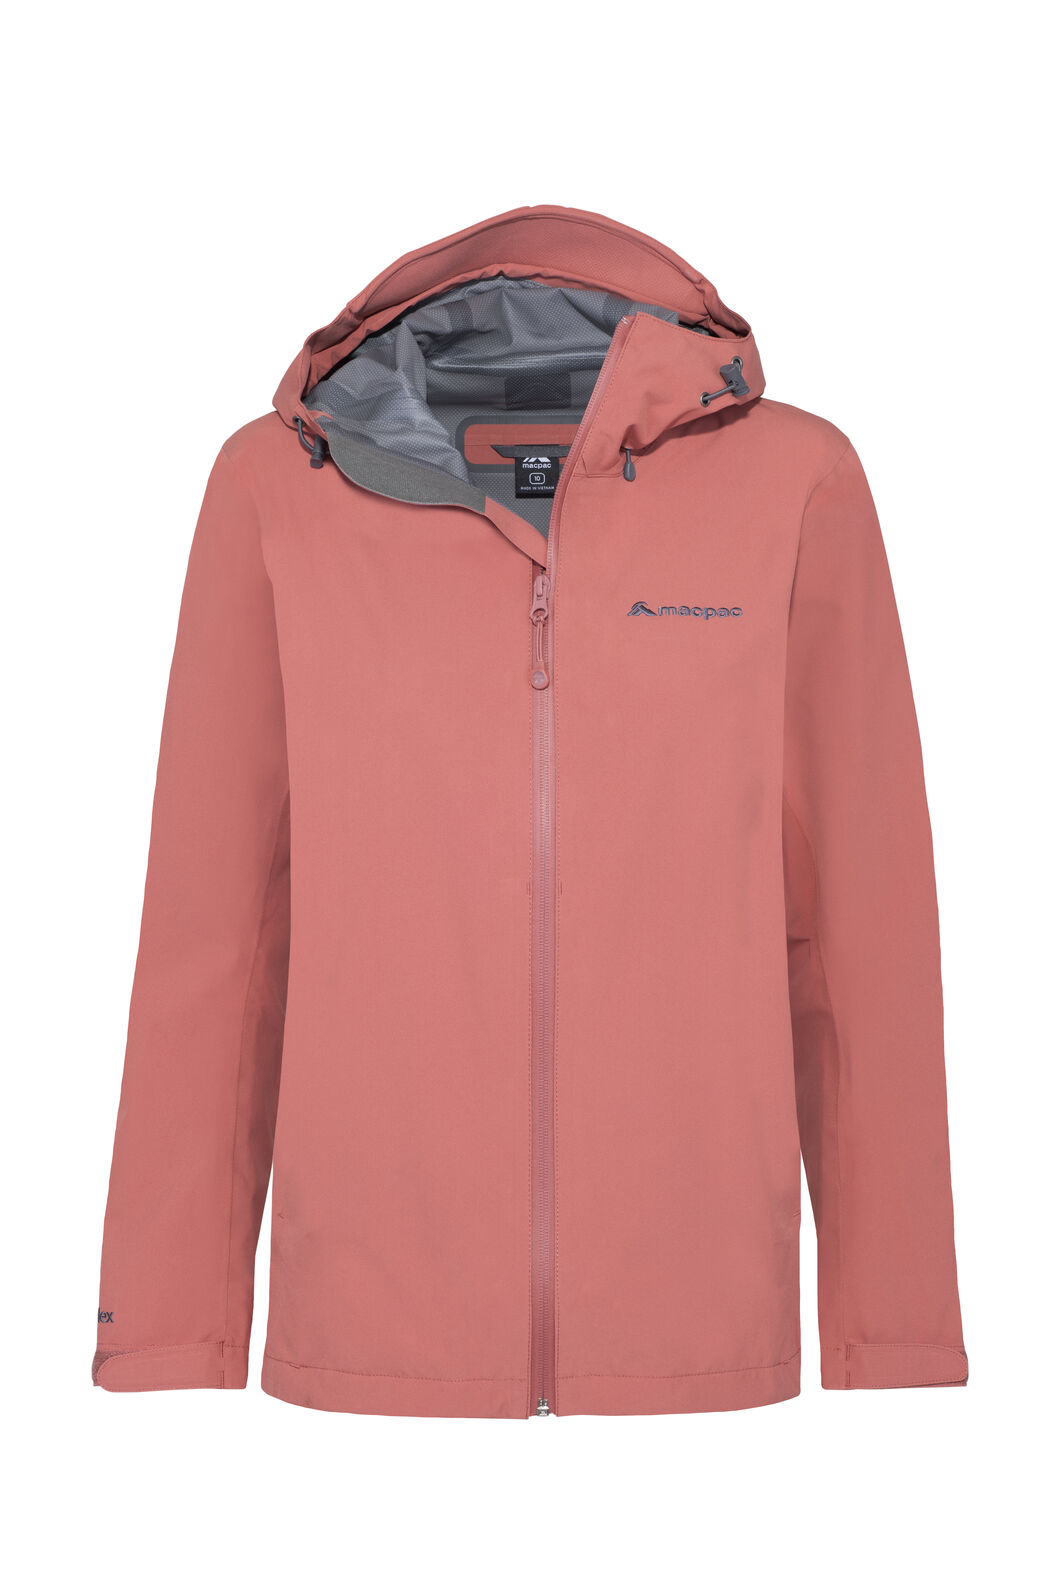 Macpac Dispatch Rain Jacket — Women's, Dusty Cedar, hi-res